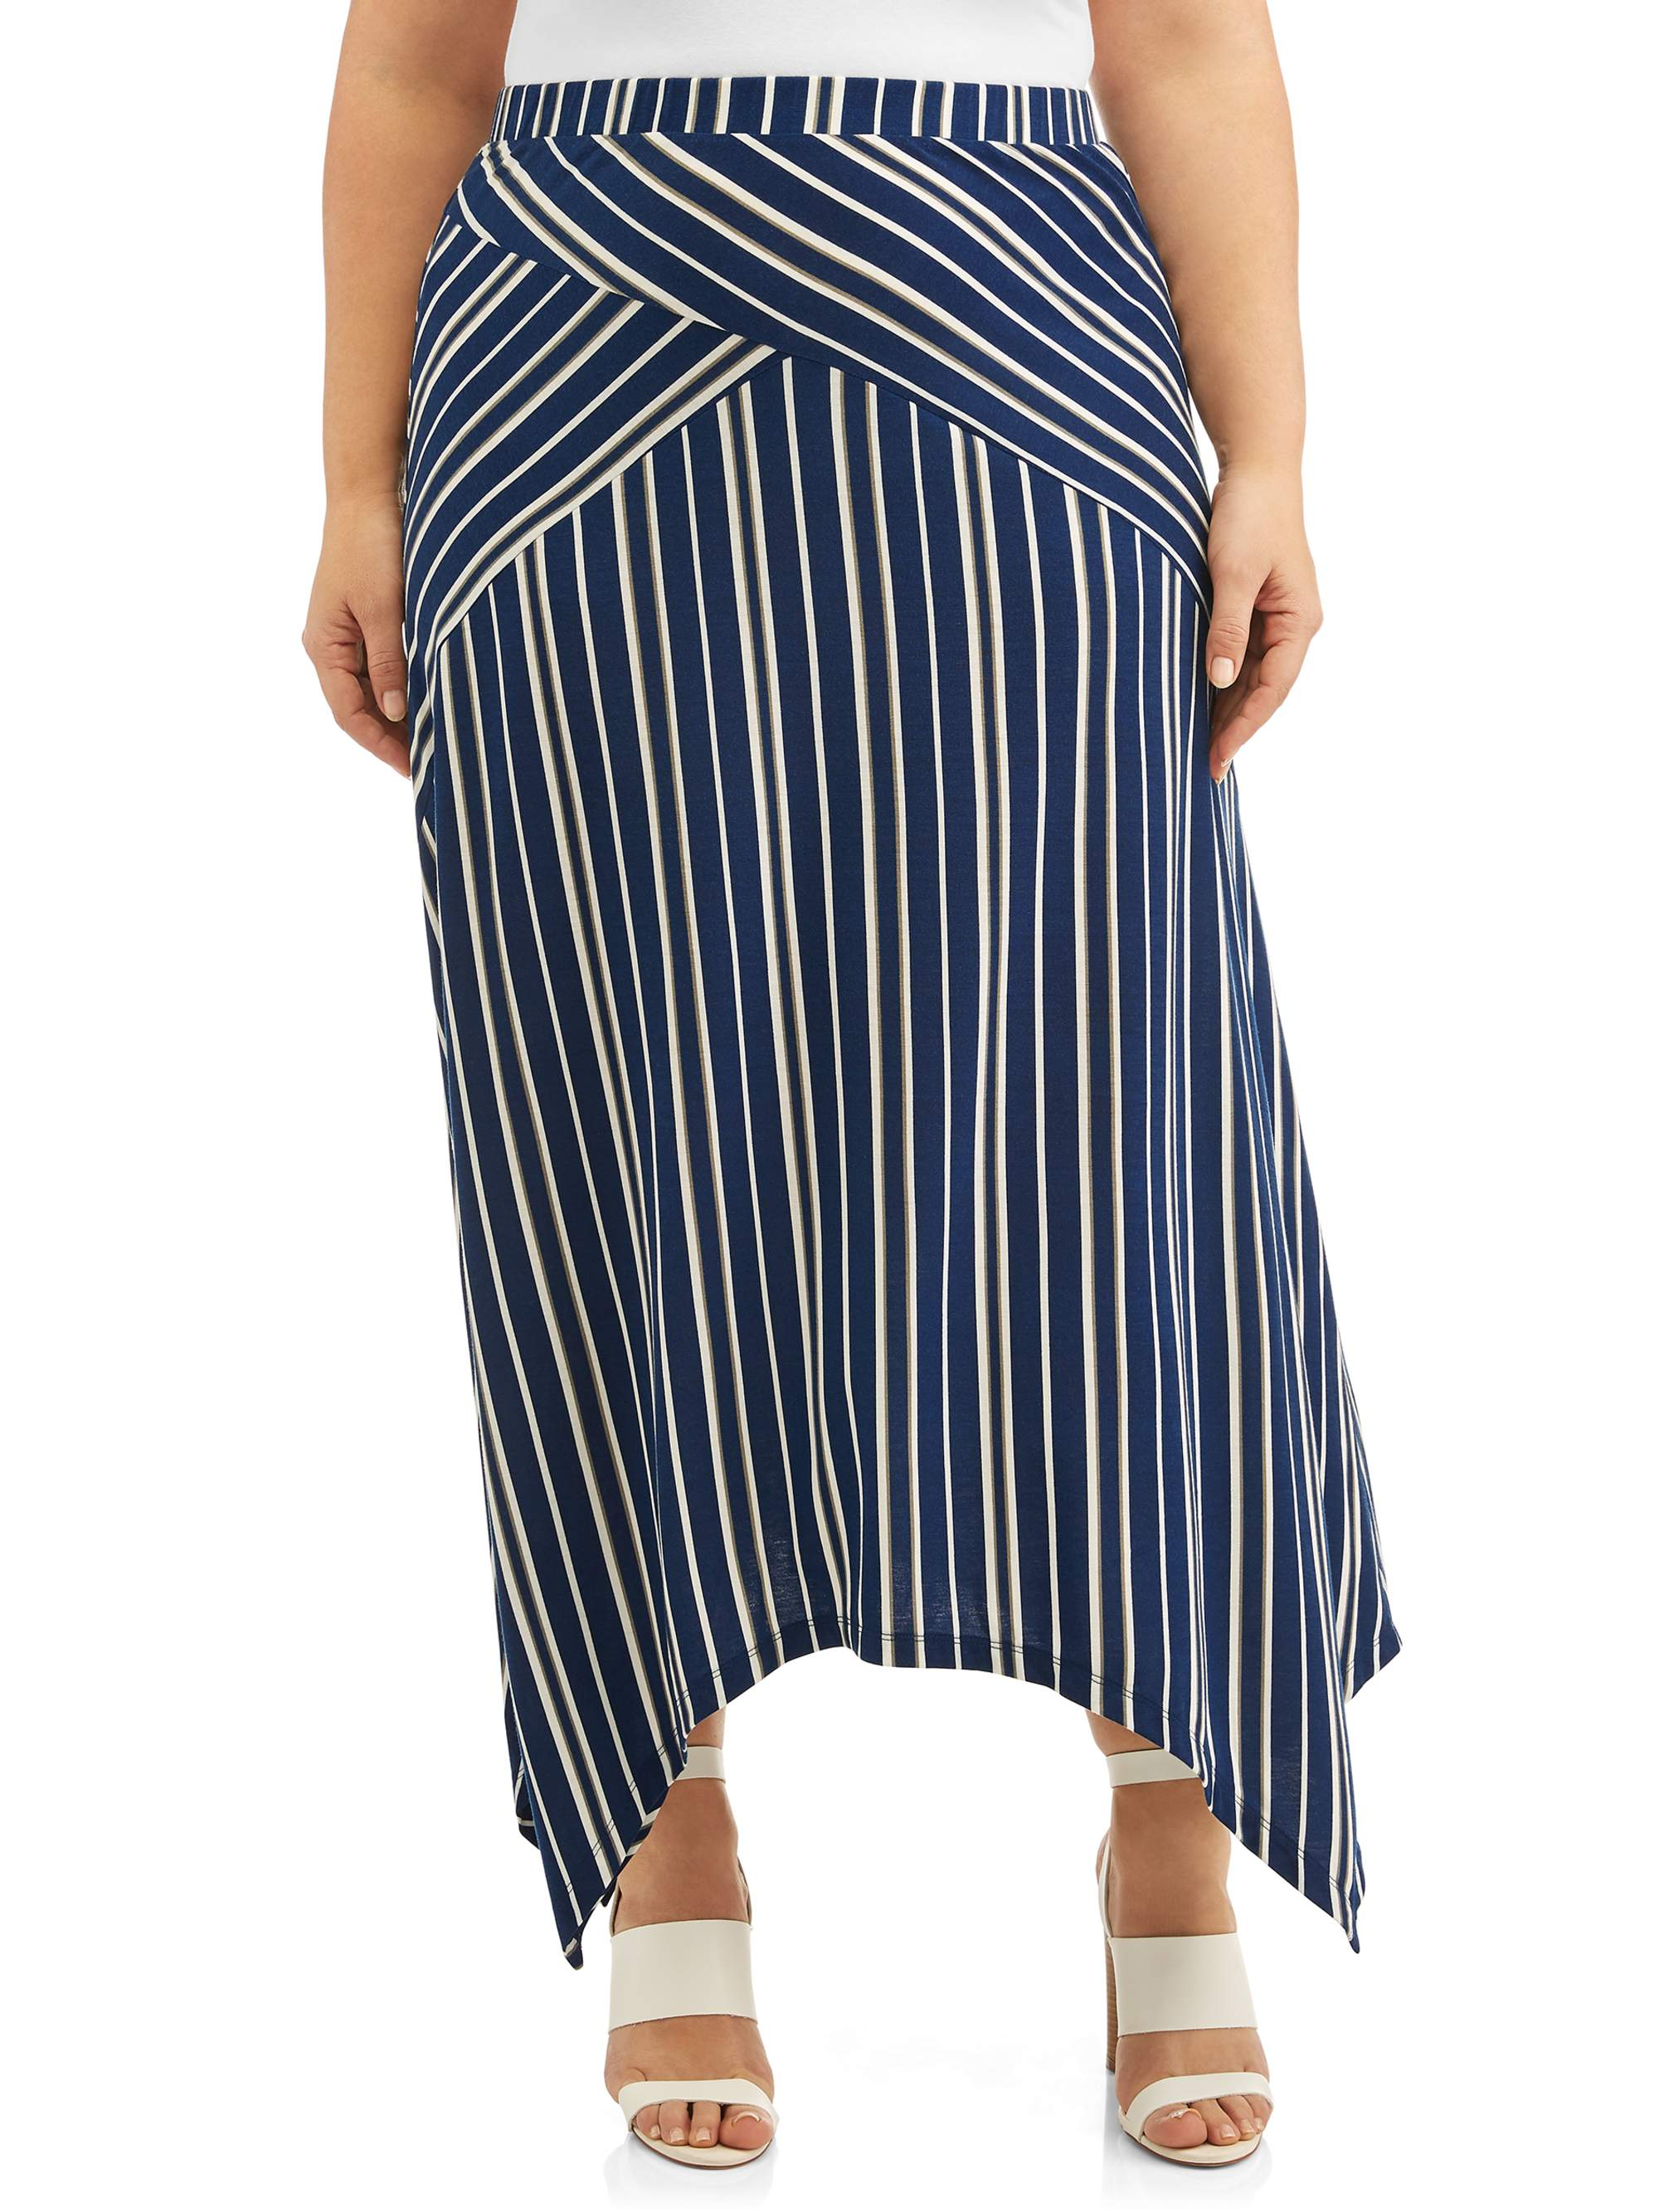 Women's Plus Size Assymetrical Skirt